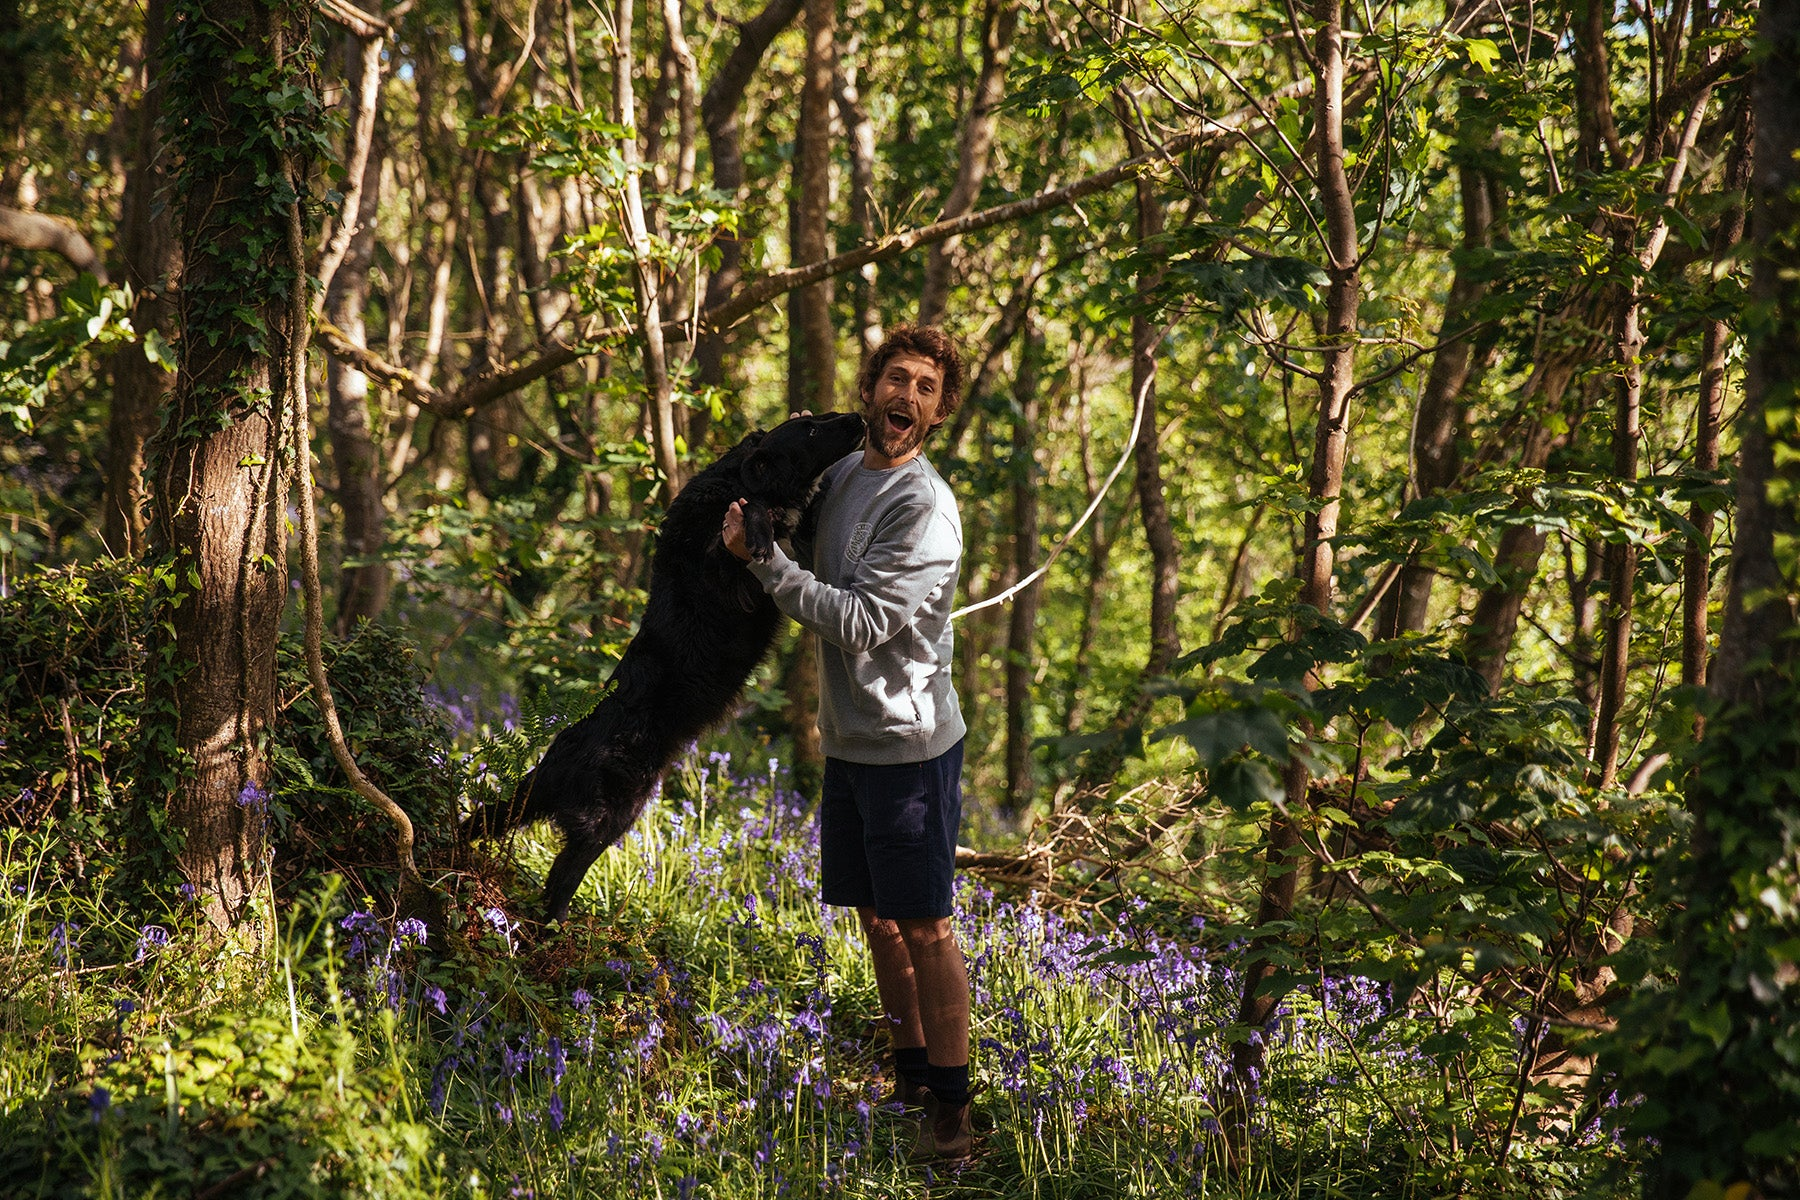 James Bowden and his dog Dillon in the woods near their home